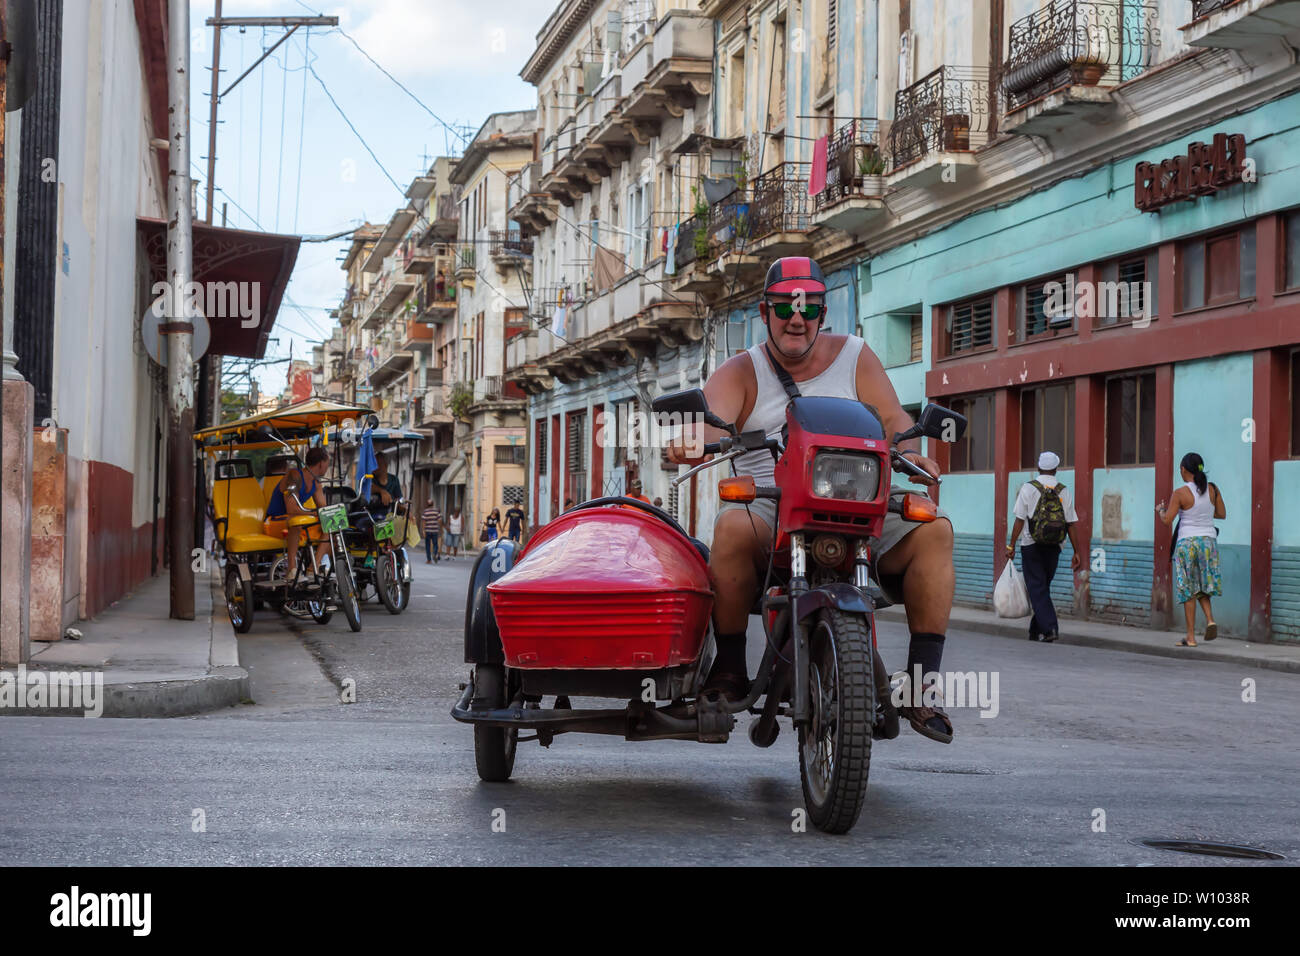 Havana, Cuba - May 13, 2019: Cuban man riding a motorcycle in the streets of Old Havana City during a vibrant and bright sunny day. Stock Photo